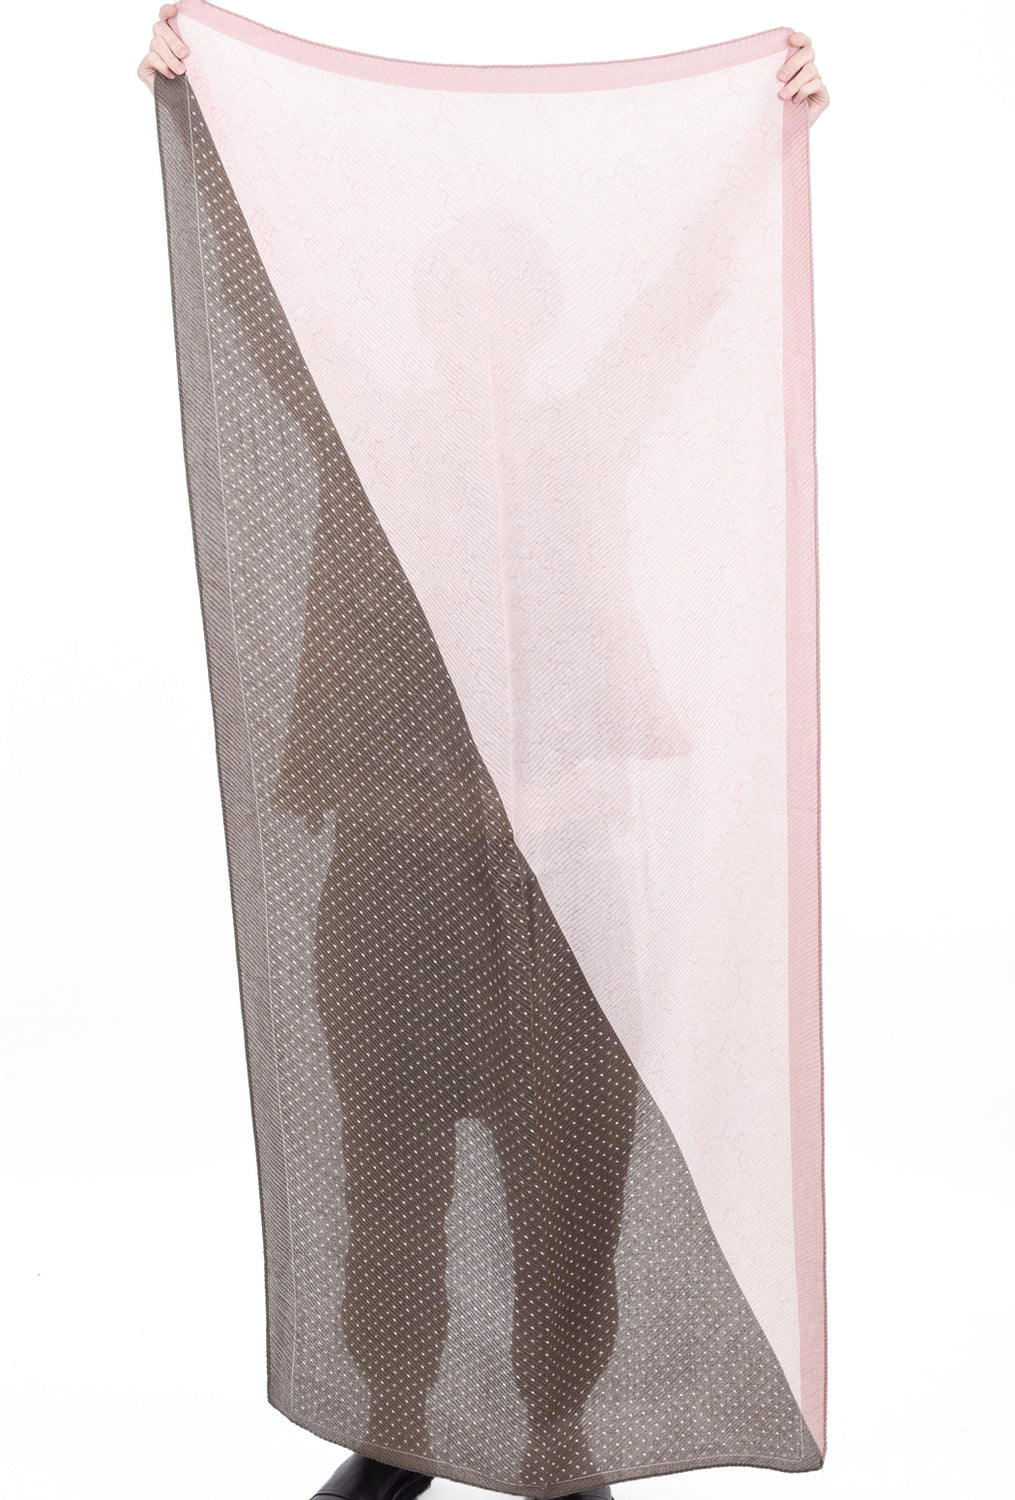 Pretty Persuasions PP Rectangle Scarf, Taupe/Pink One Size Pink